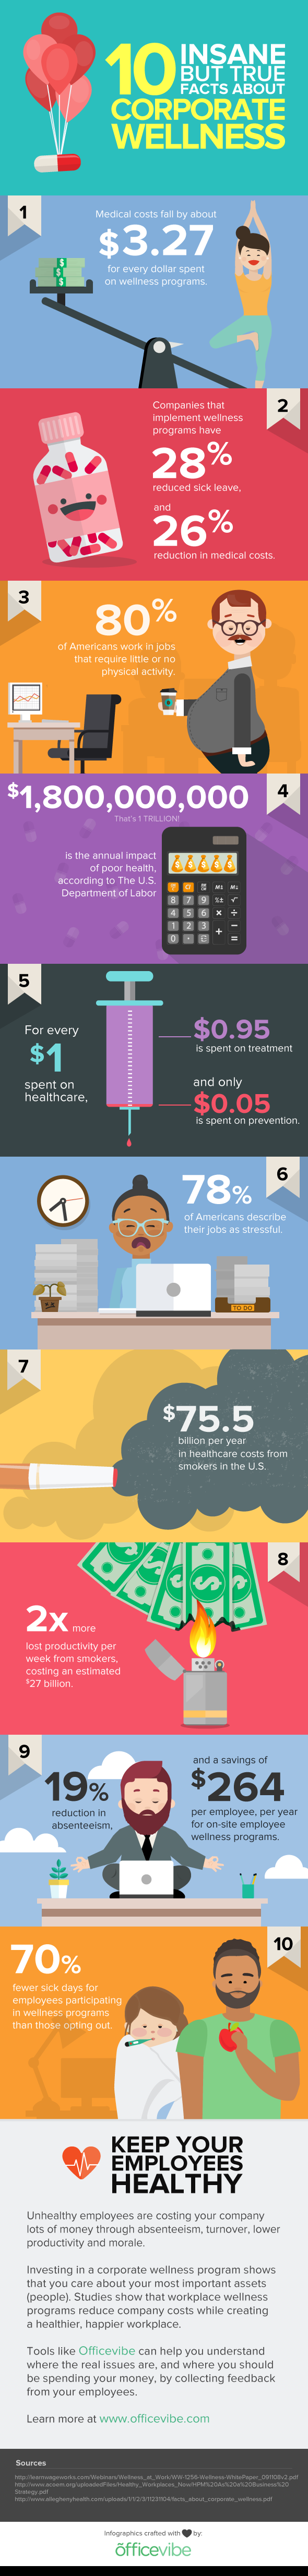 infographic-employee-wellness.png